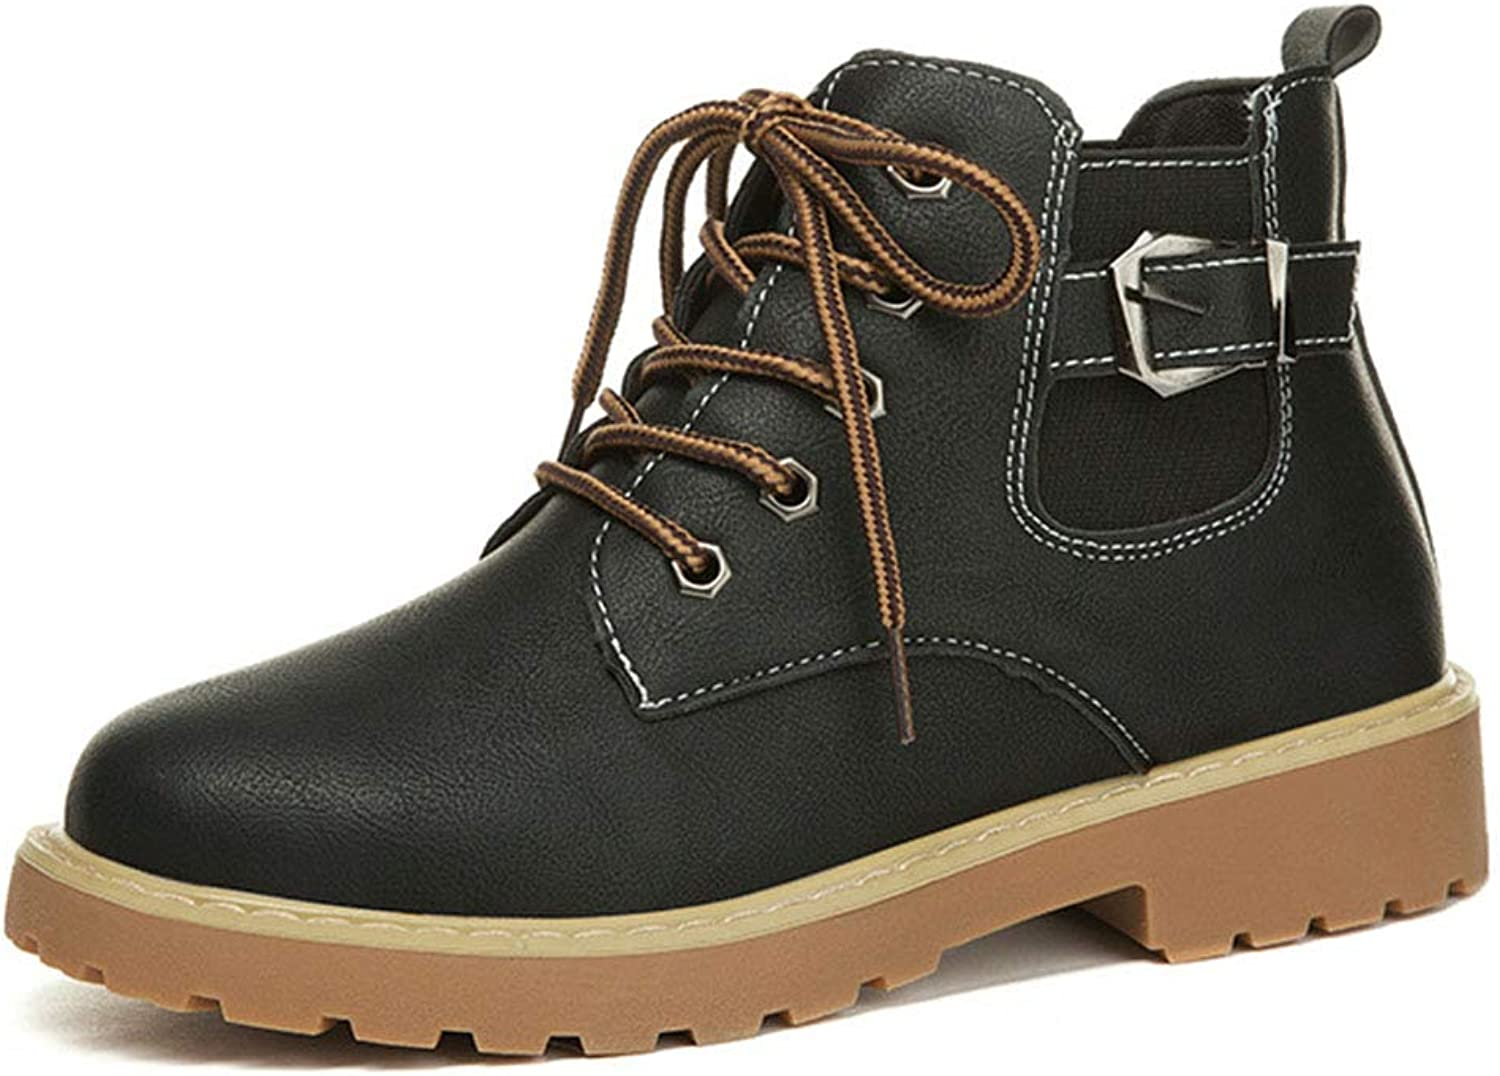 JUNE Women's Lace Up Buckle Chukka Boots Work shoes